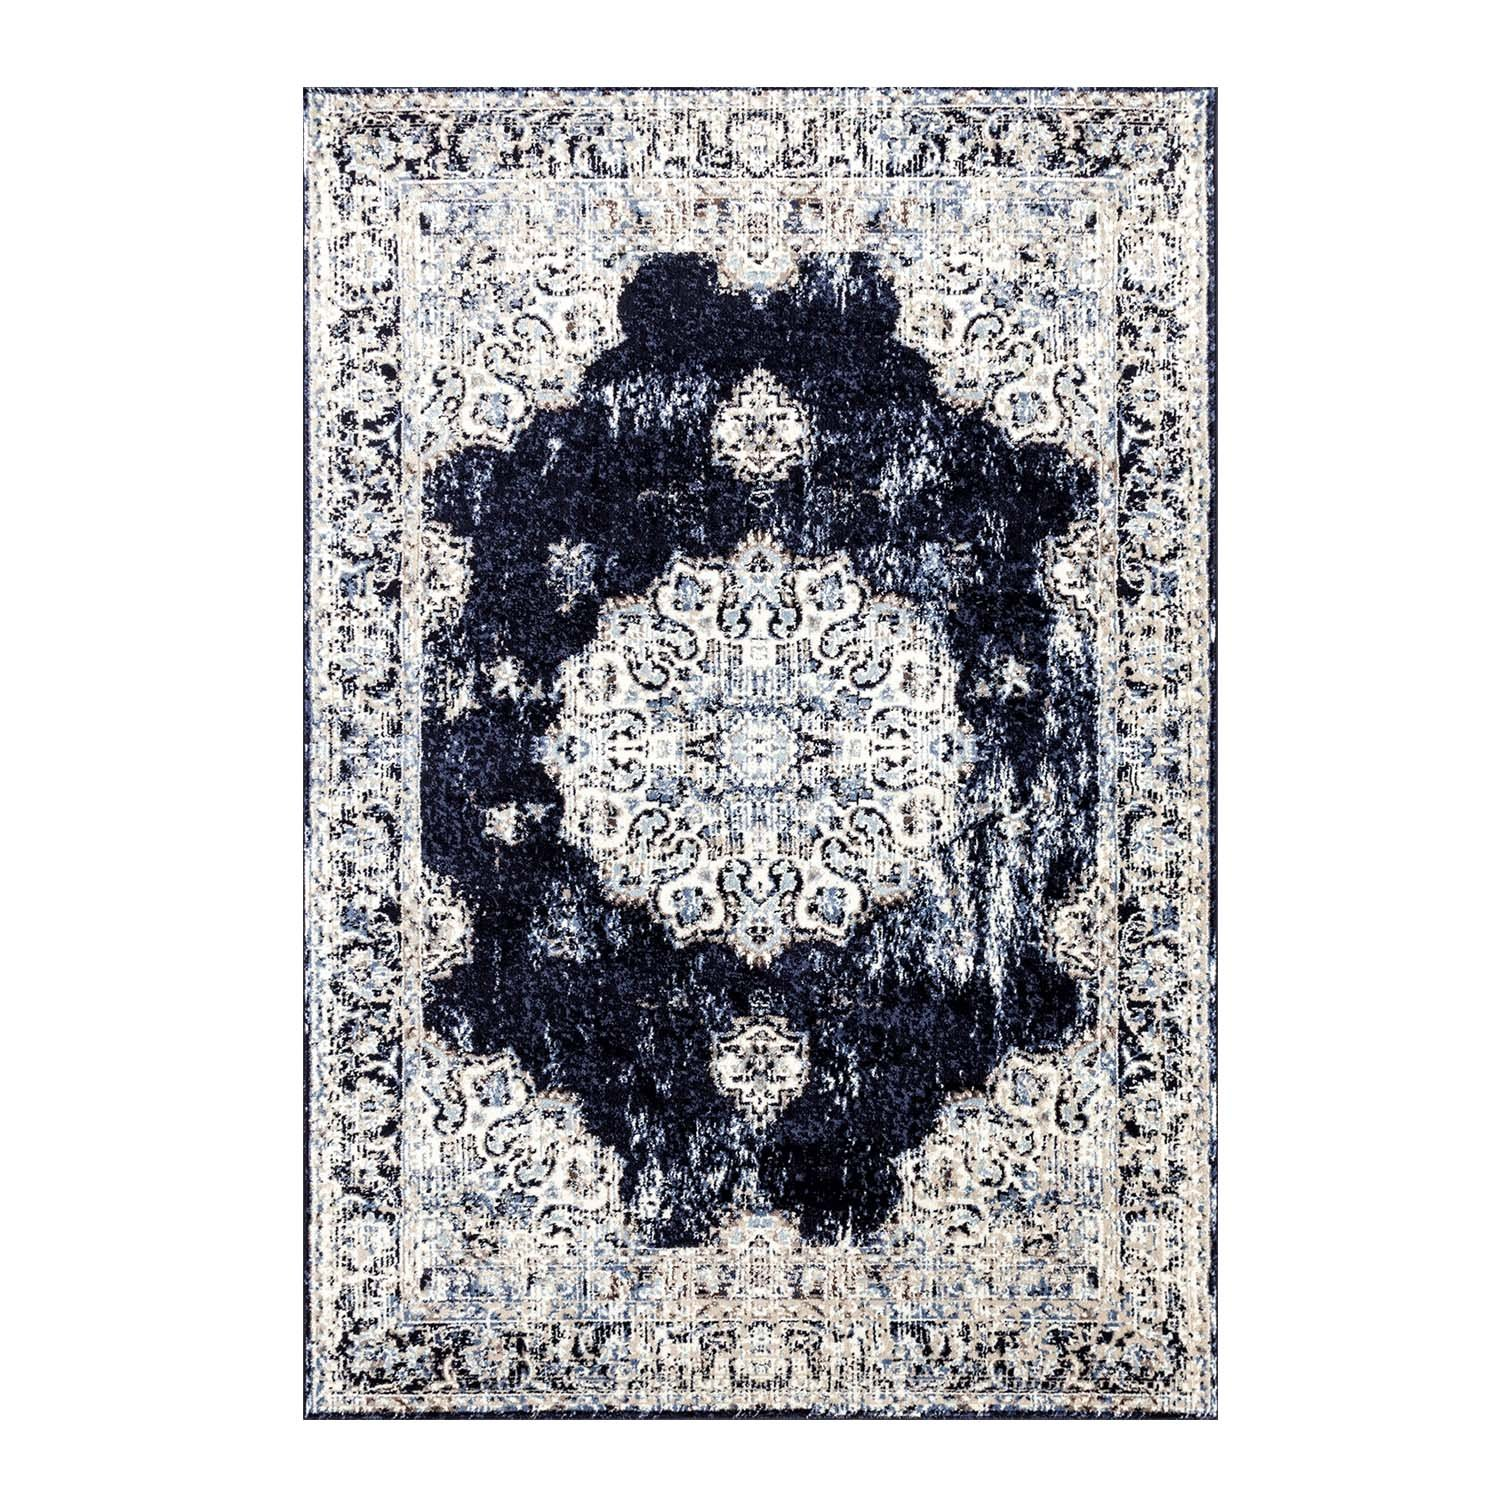 Ladole Rugs Anatolia Polypropylene Beautiful Made from Europe Durable Area Rug Carpet in Ivory, 2x3 (2' x 3'3, 60cm x 100cm) 2x3 (2' x 3'3